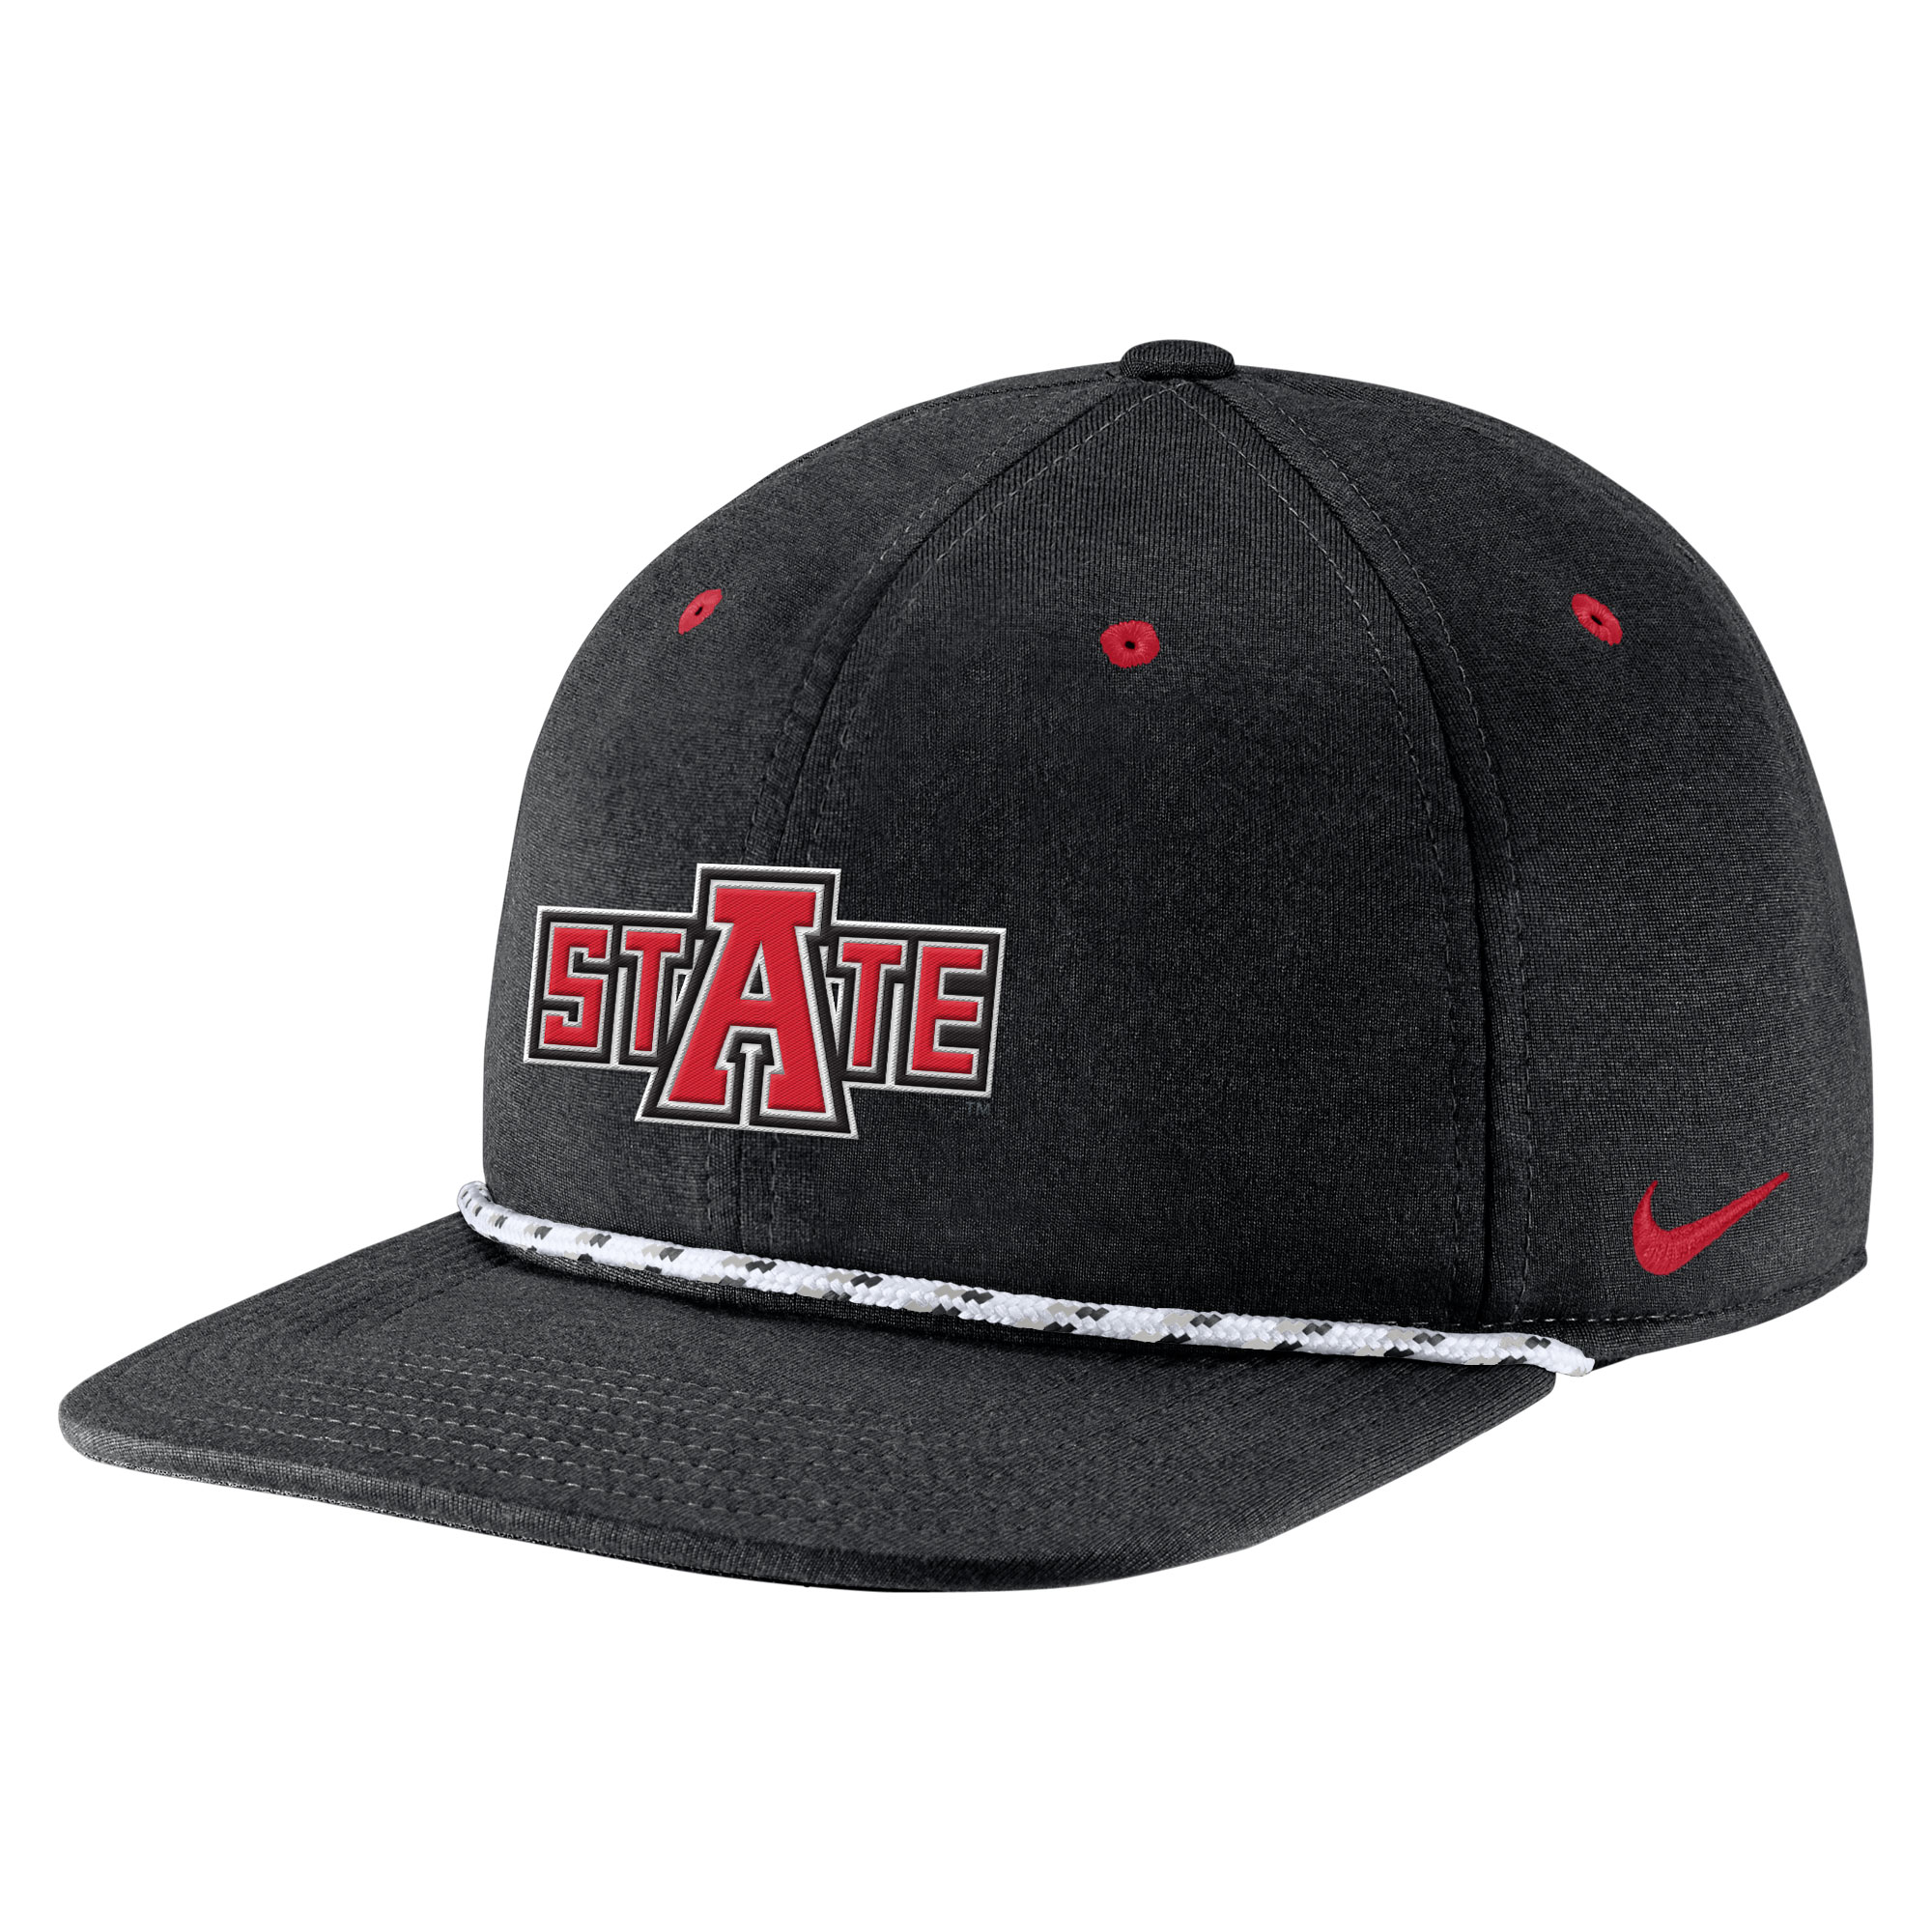 Arkansas State Seasonal Roped Pro Cap